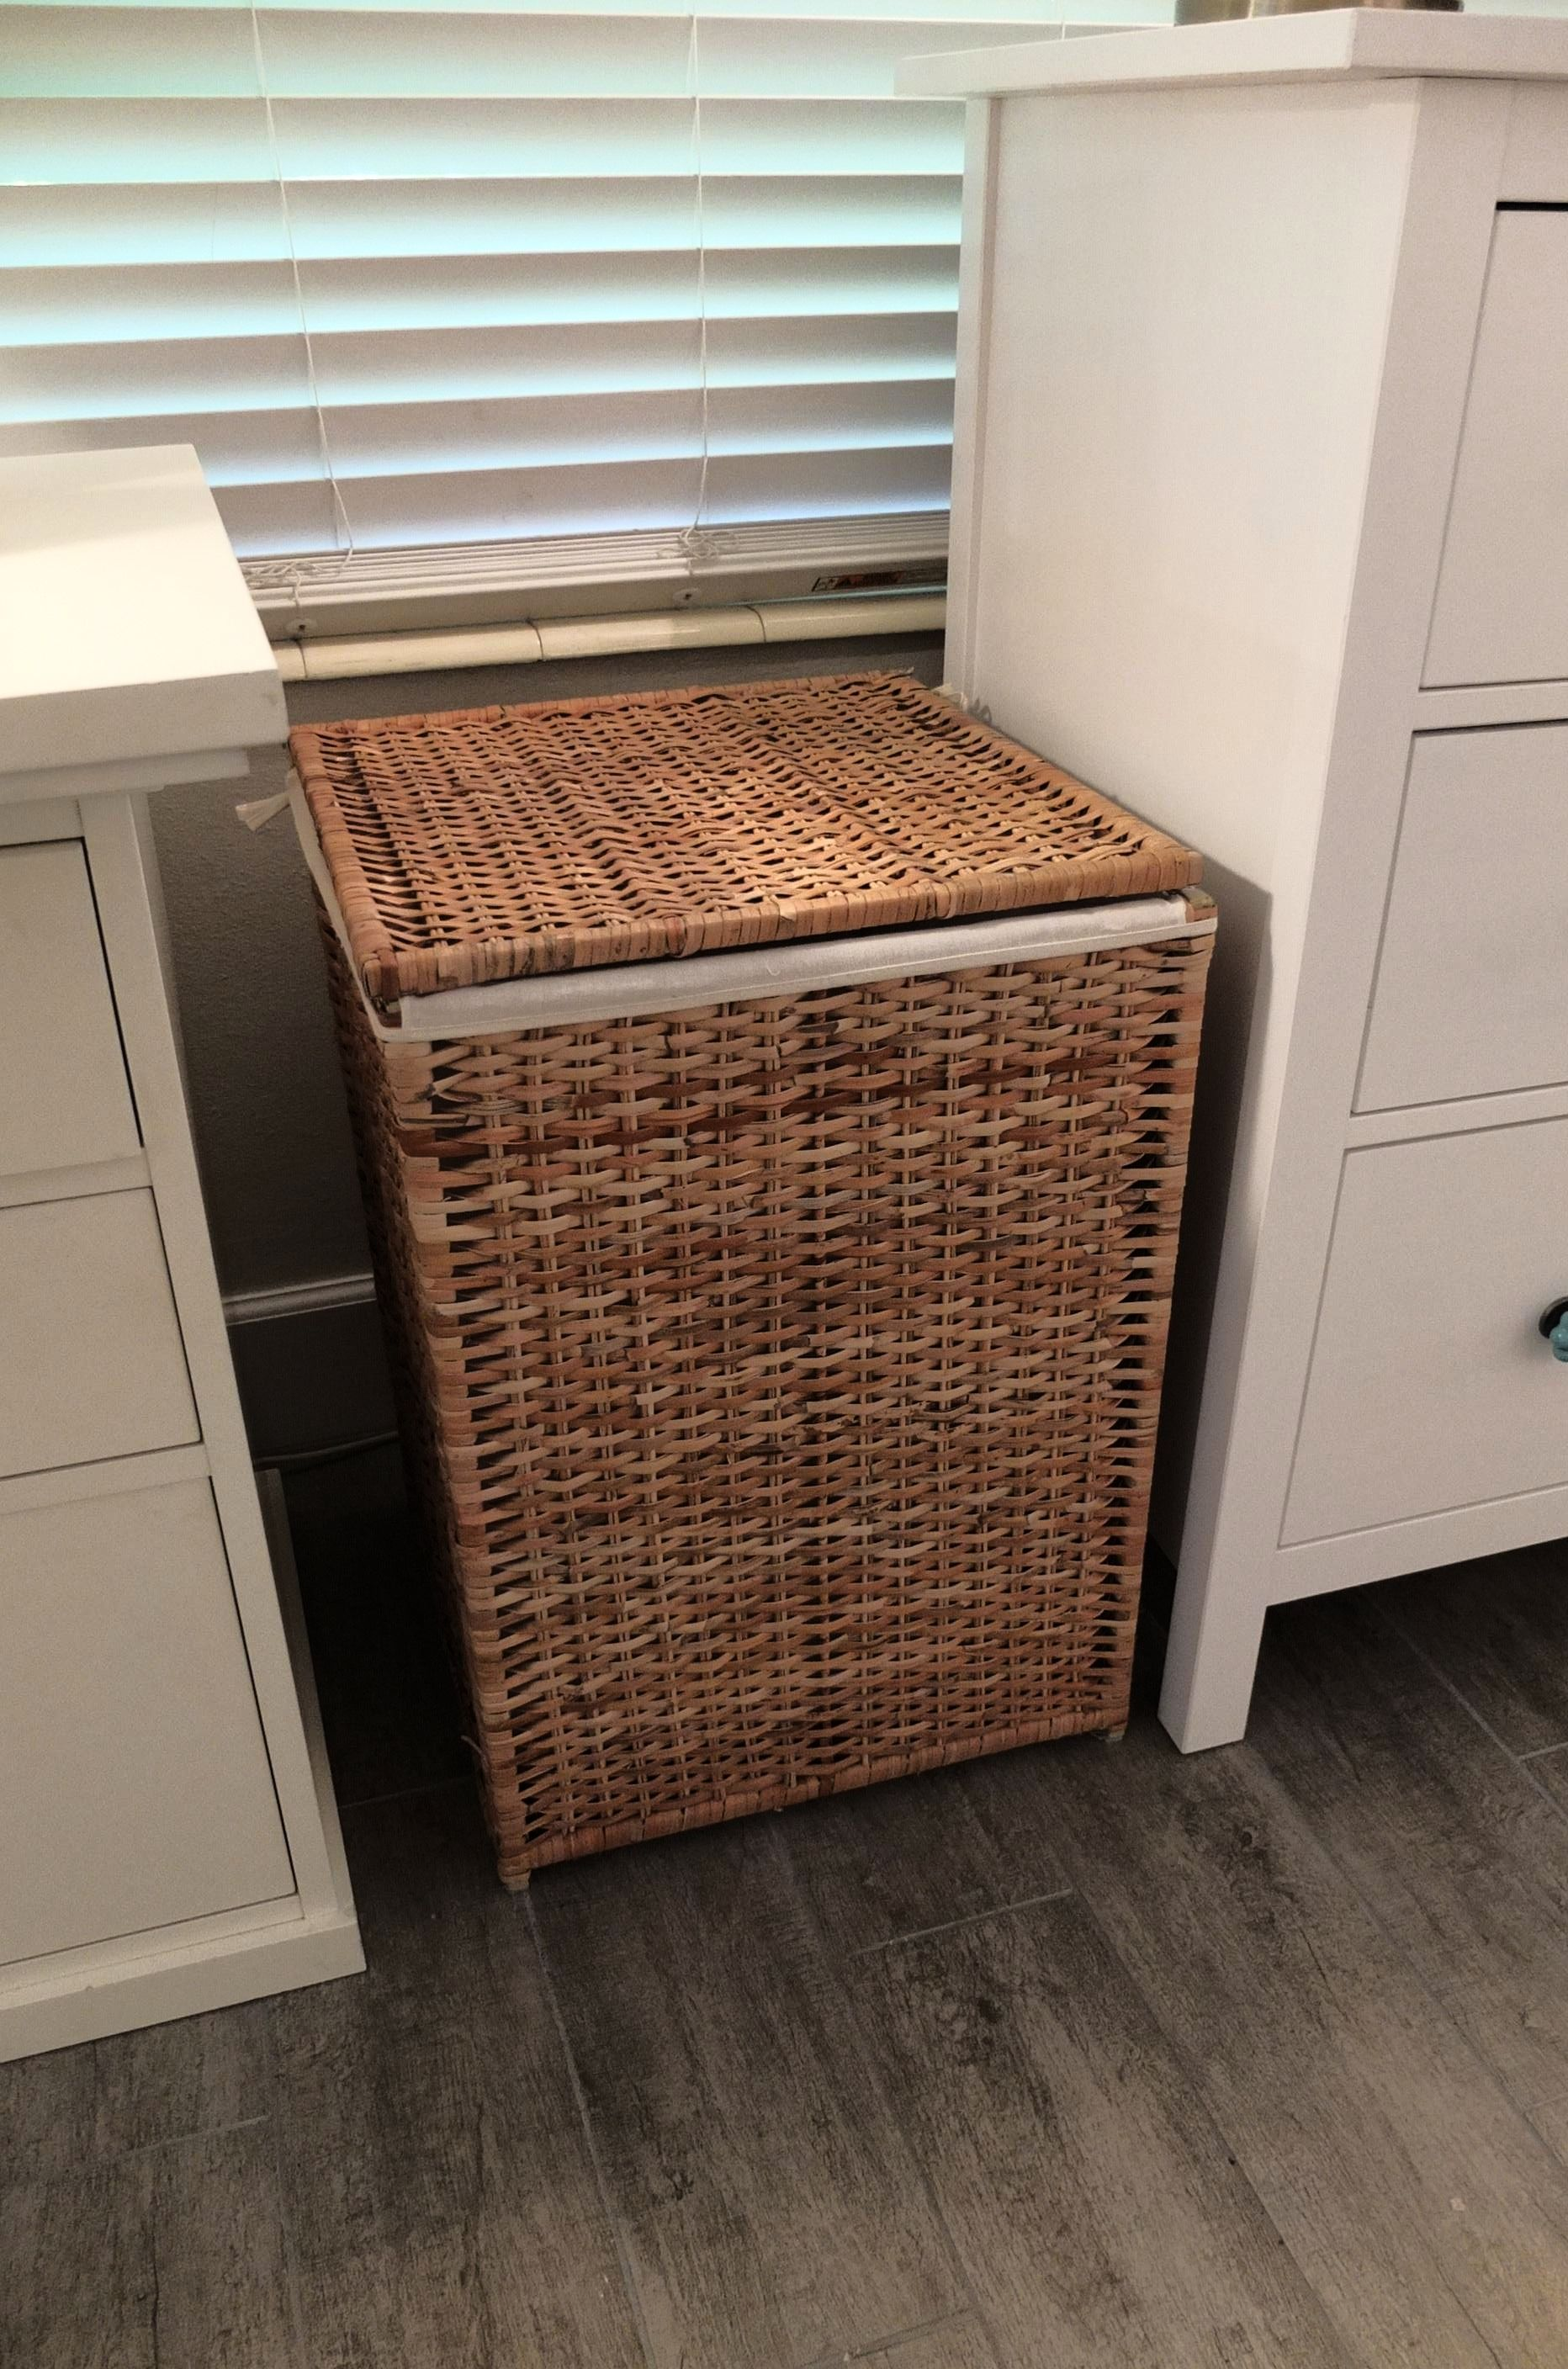 Bran 196 S Laundry Basket With Lining Rattan Ikea Home Tour